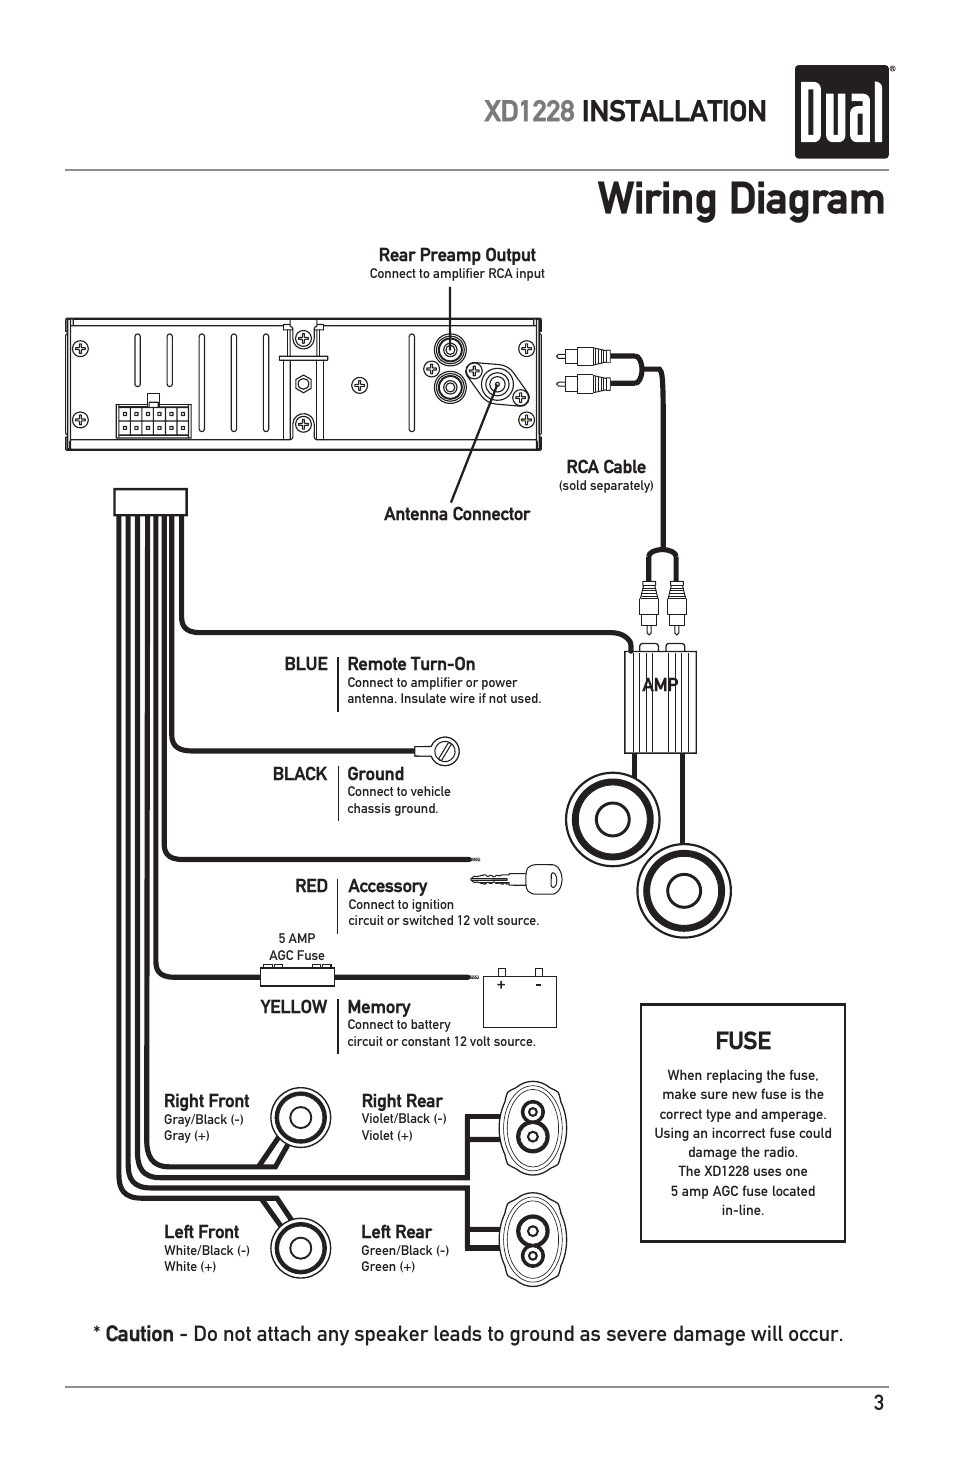 dual xd1228 page3 dual radio wiring diagram dual car radio wiring diagram \u2022 free wiring diagram for a dual car stereo at eliteediting.co